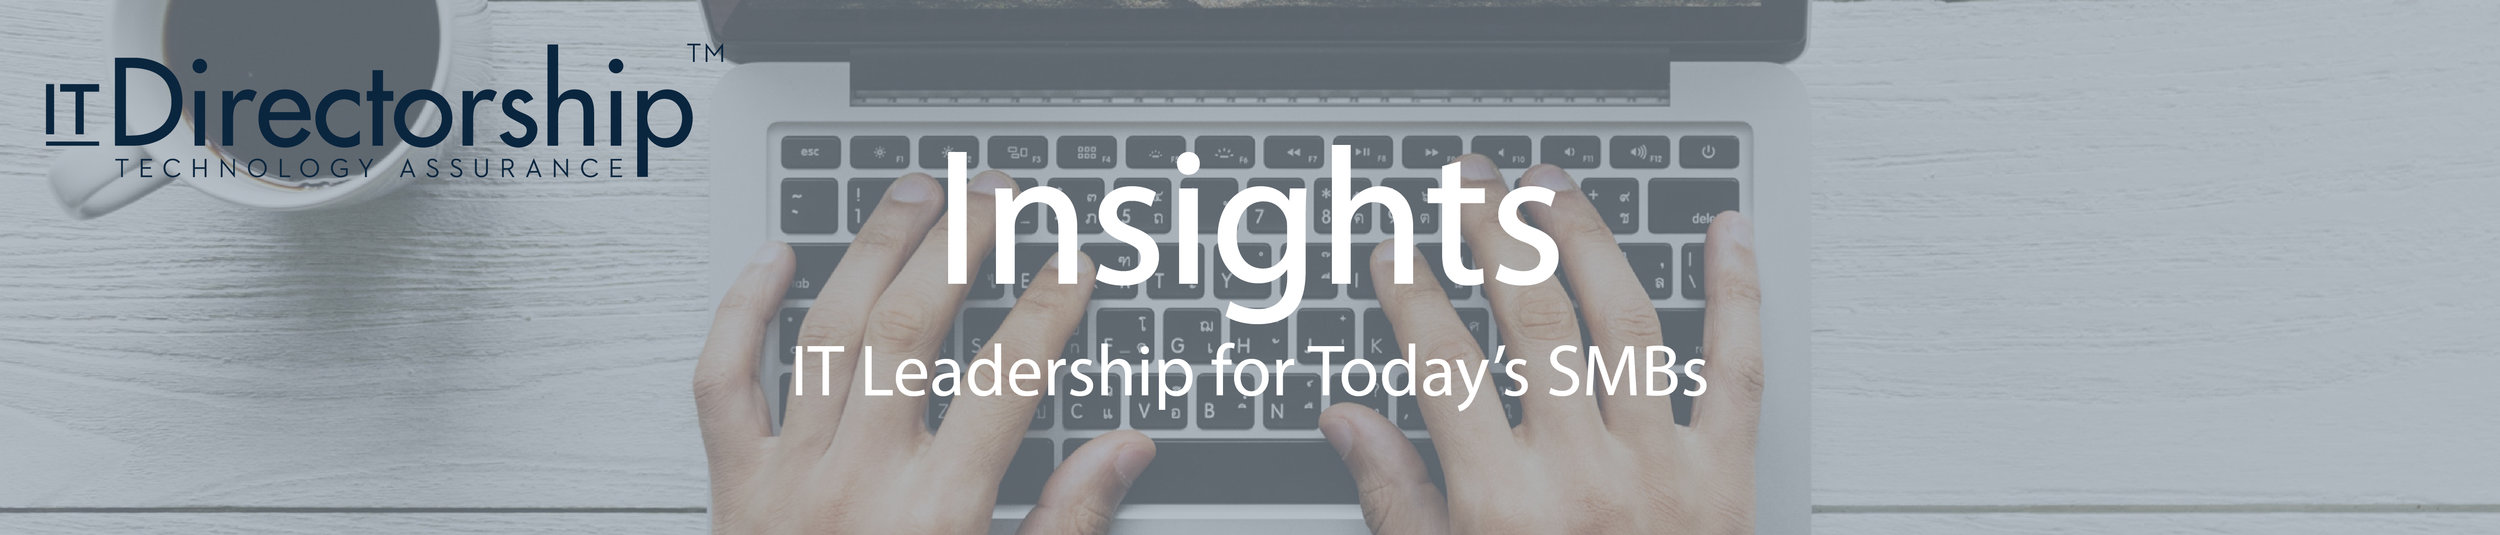 IT Directorship Insights